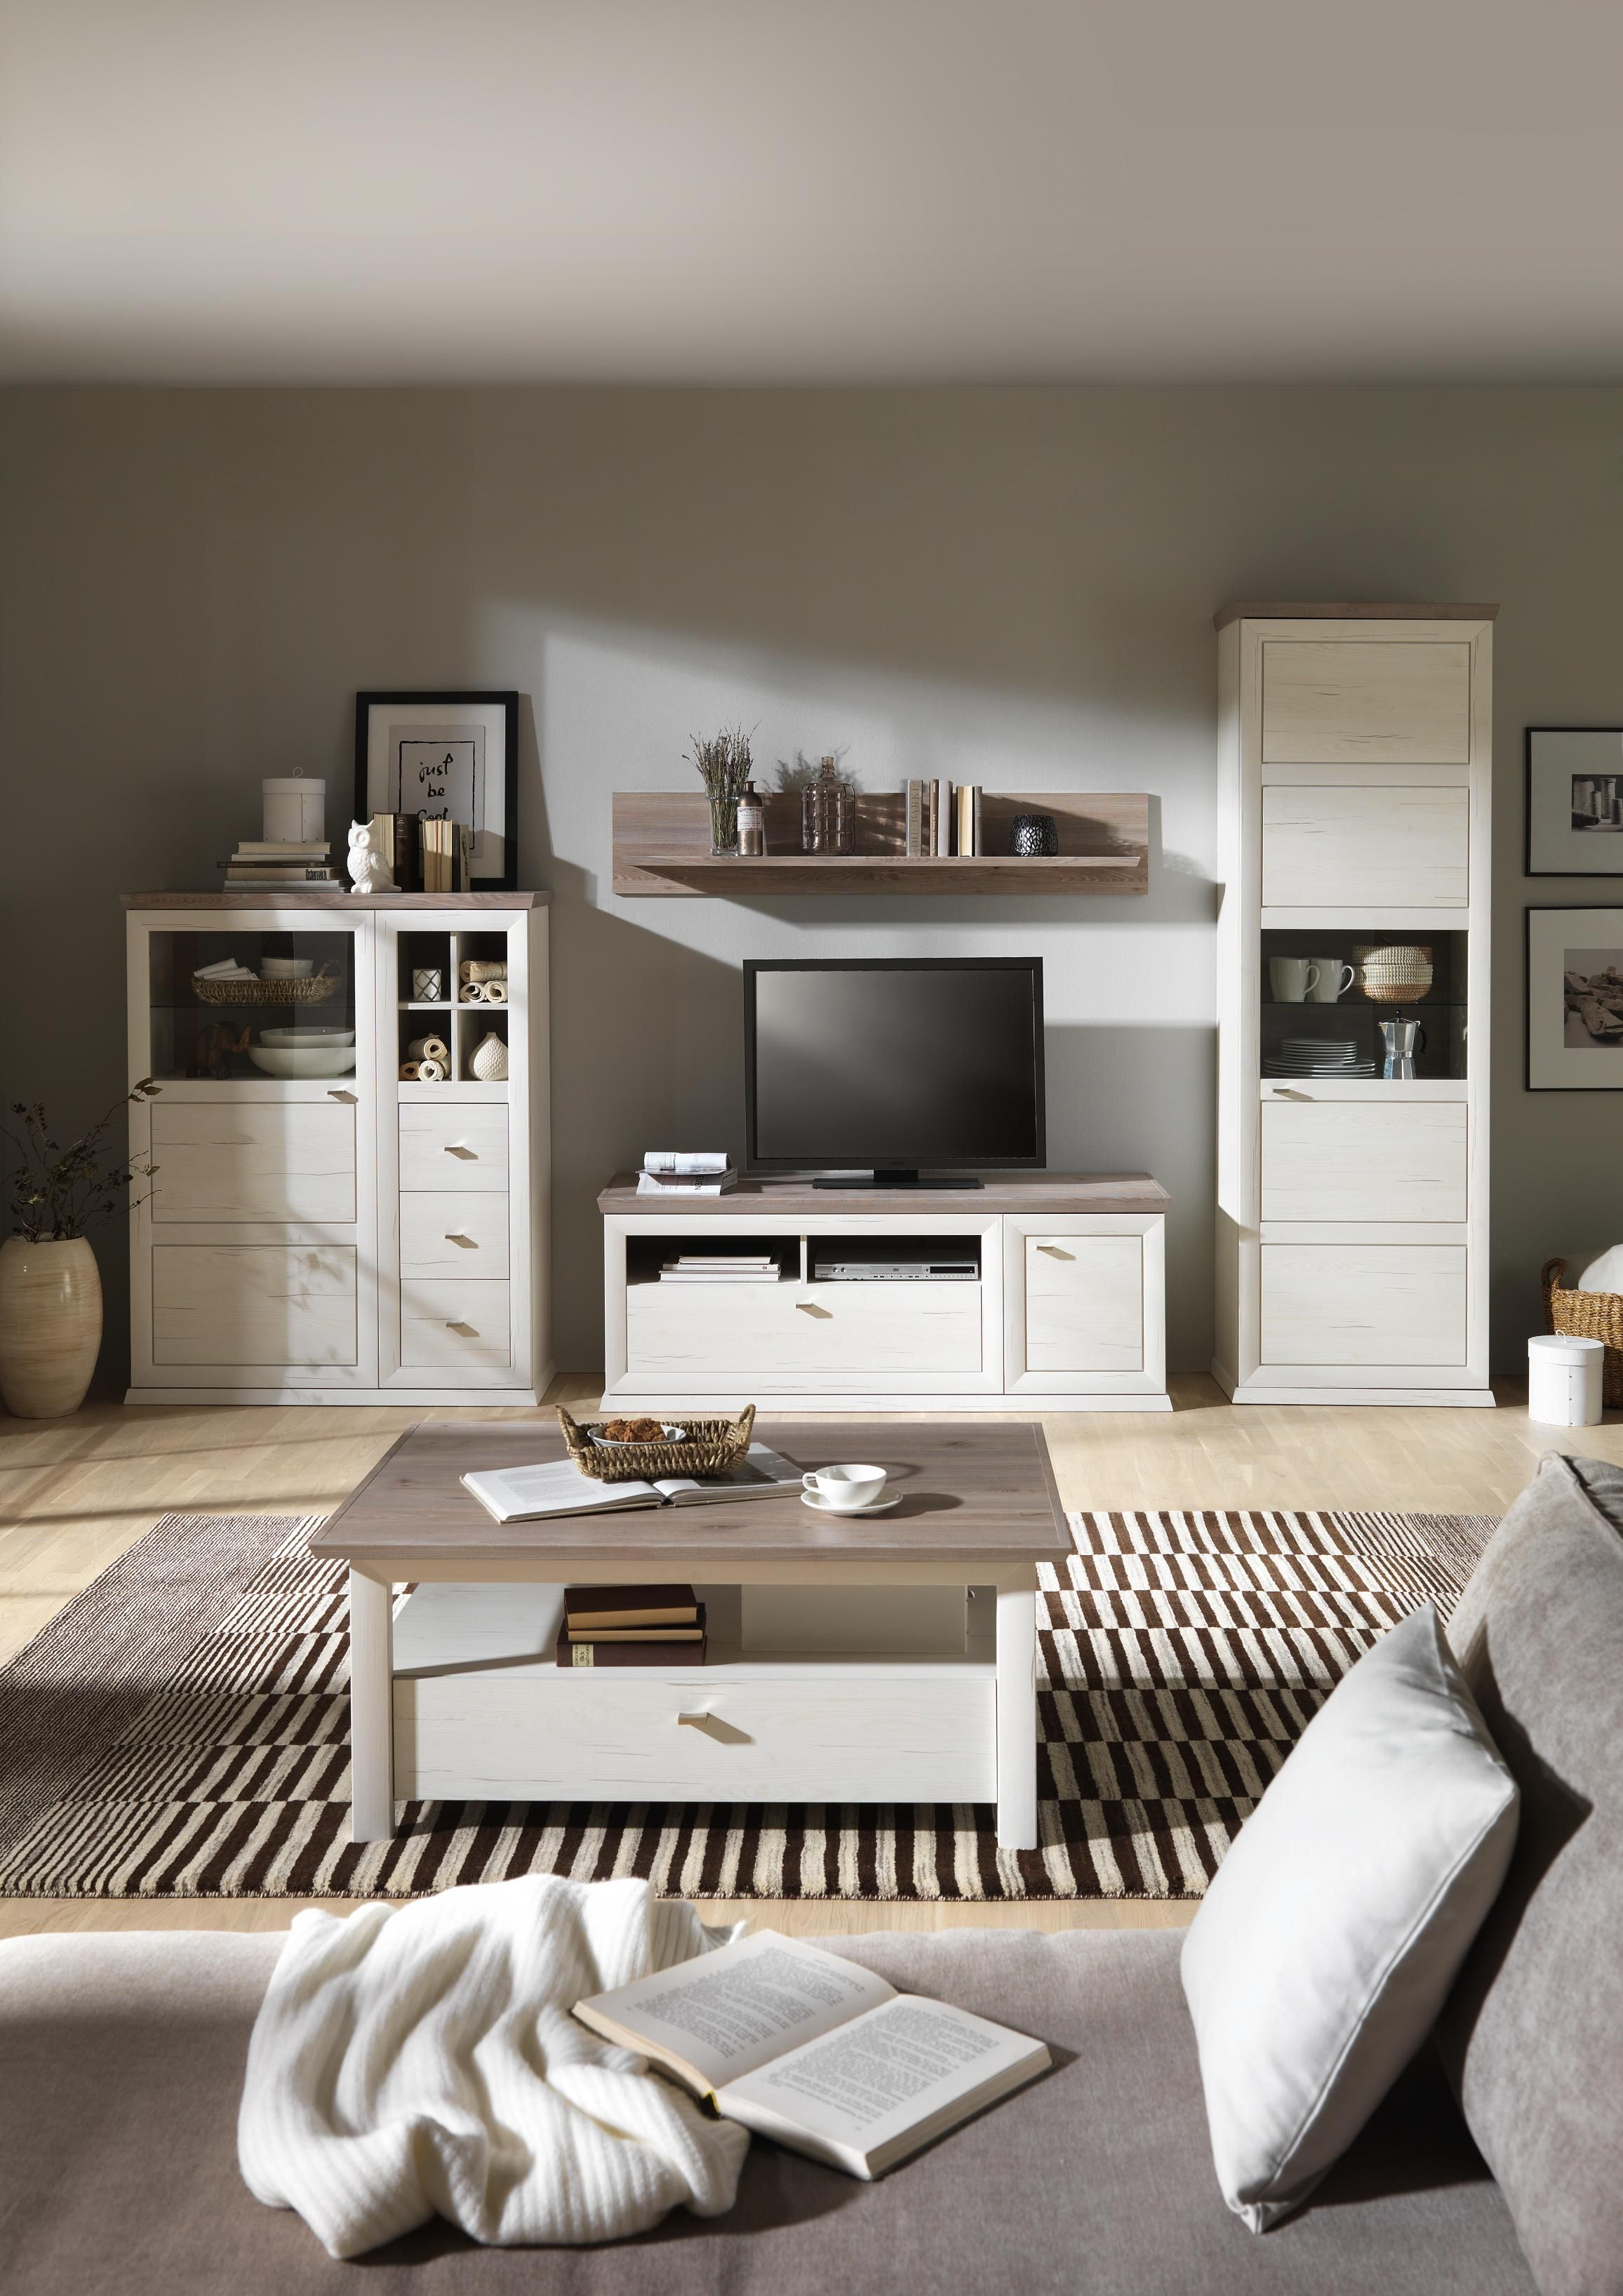 Set One By Musterring Wohnwand »york«, Pino Aurelio, Im Landhaus Stil  (4 Tlg.) | Living Rooms, Room And Interiors